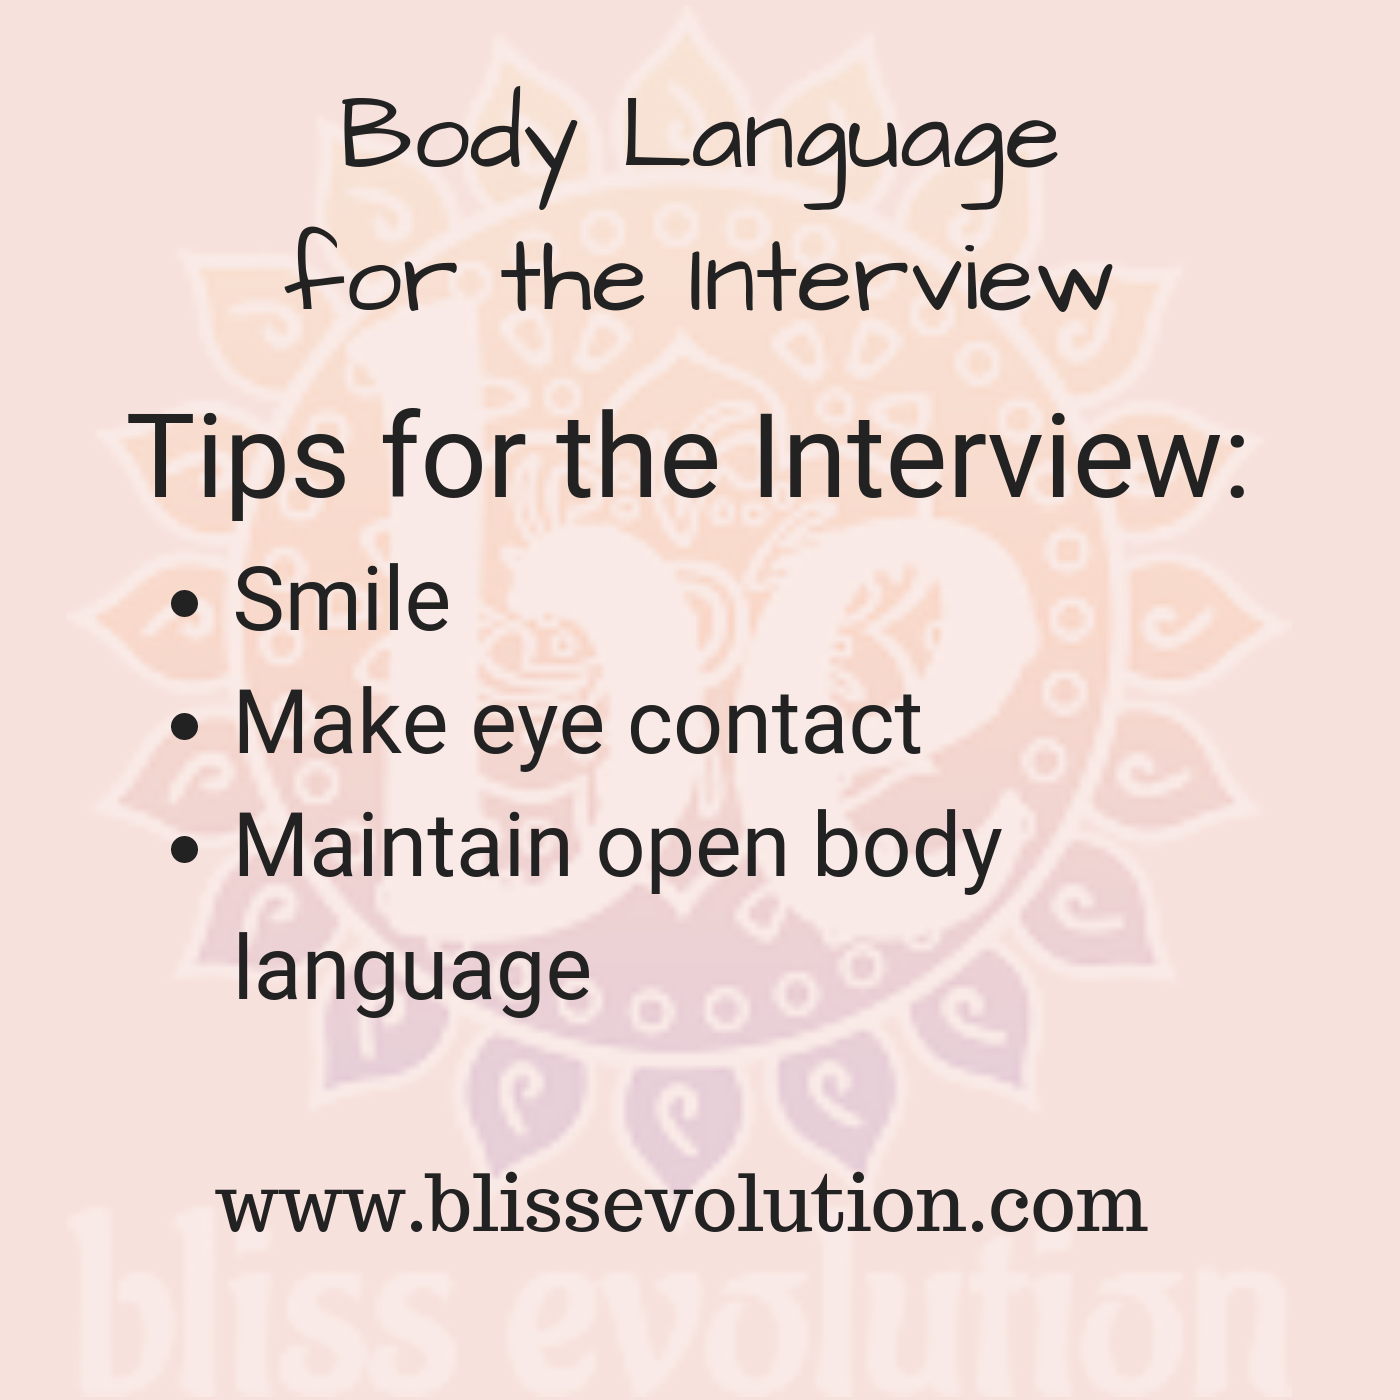 Body Language For The Interview